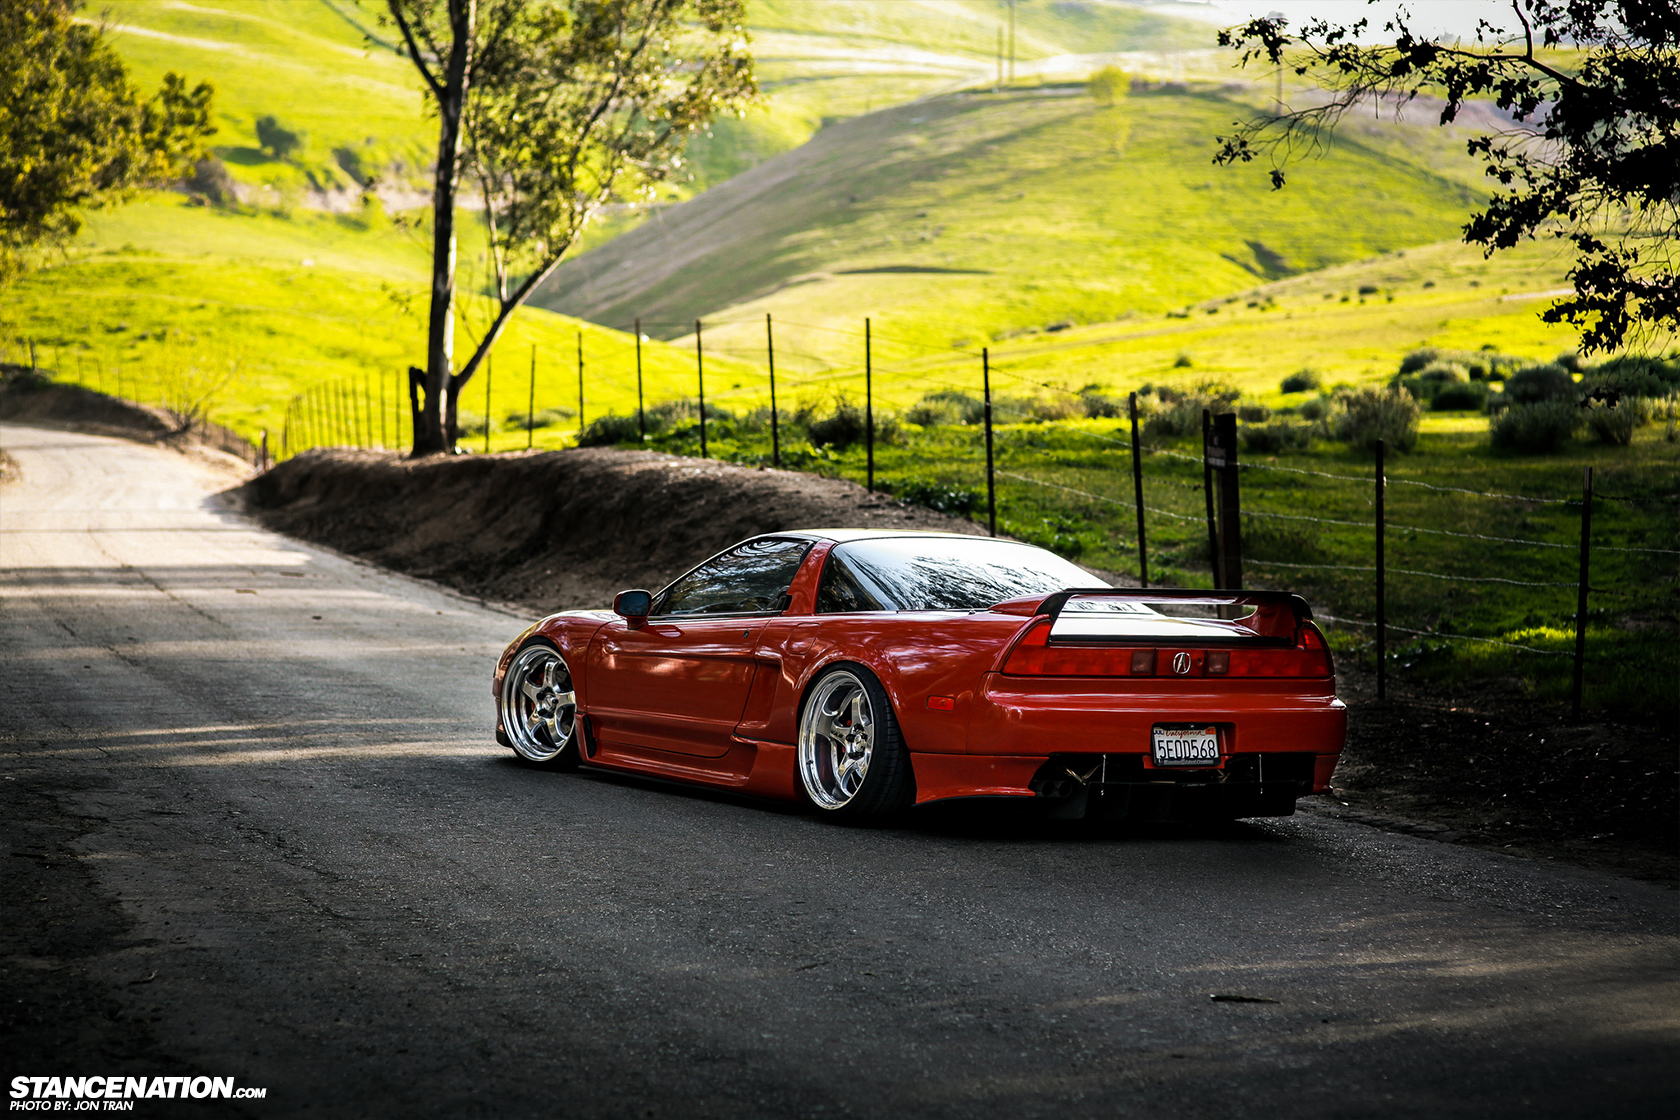 Acura Nsx R For Sale >> California Grown v2 // Kien's Incredible Acura NSX. | StanceNation™ // Form > Function